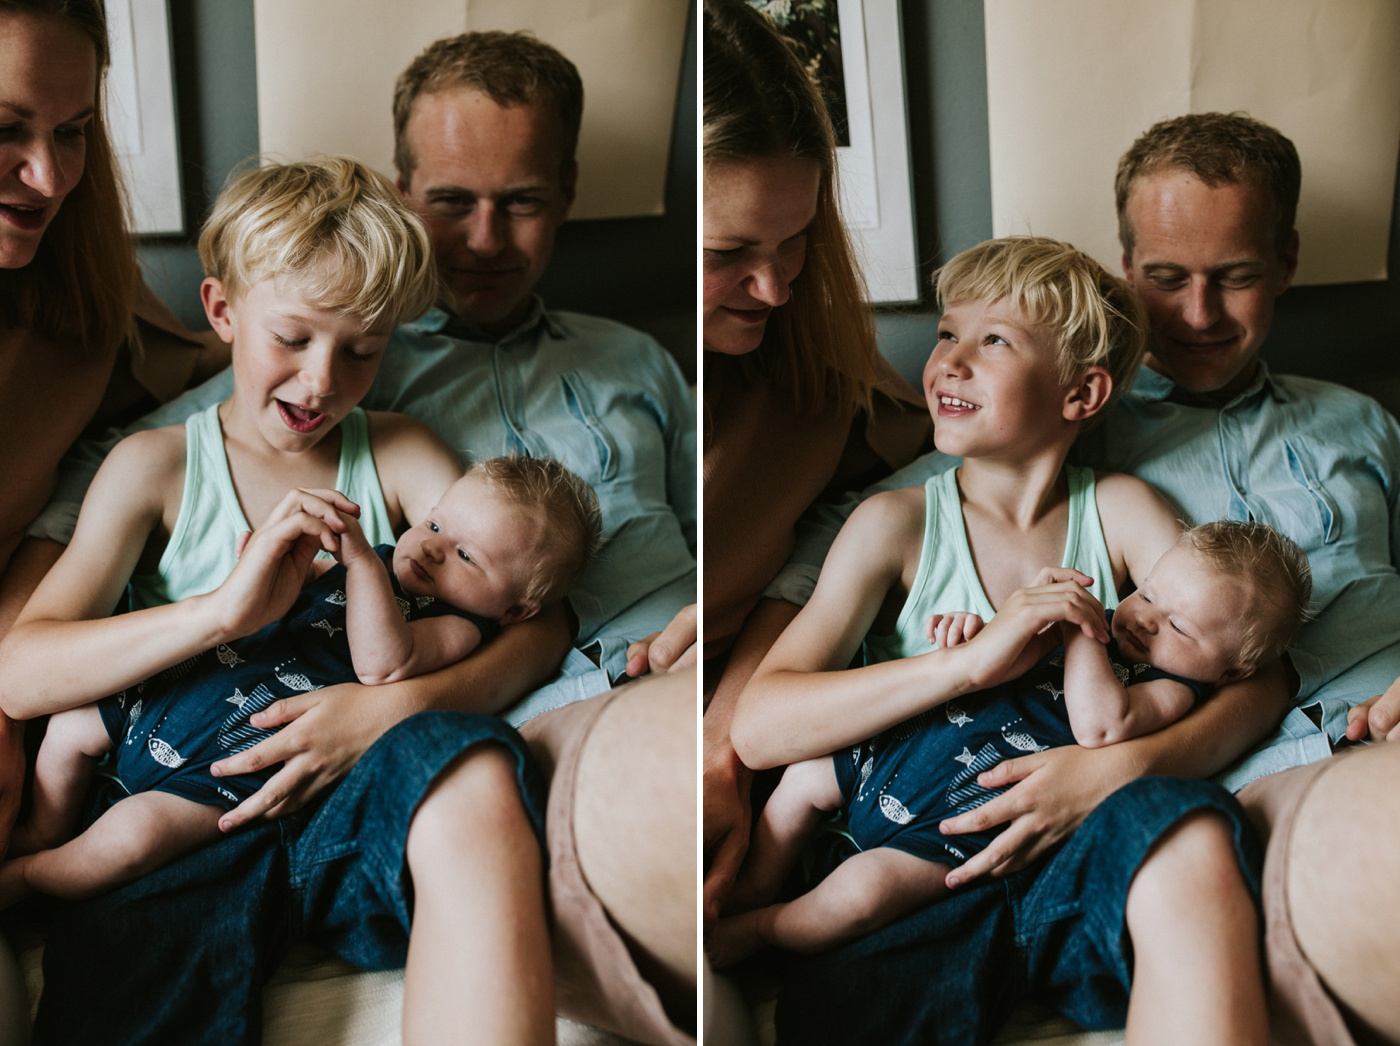 Dahlstedts_Relaxed-Lifestyle-family-photography-session_Melbourne-wedding-photography_26